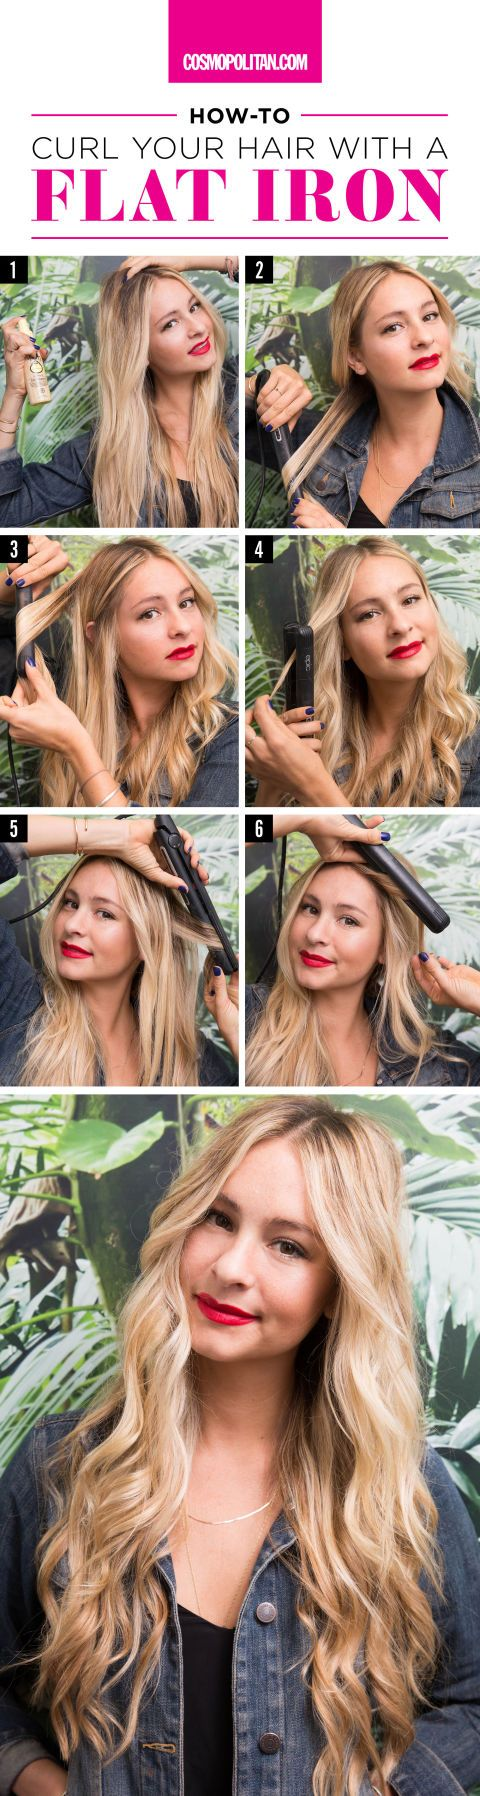 Finally The Right Way To Curl Your Hair With A Straightener Hair Styles How To Curl Your Hair Curl Hair With Straightener